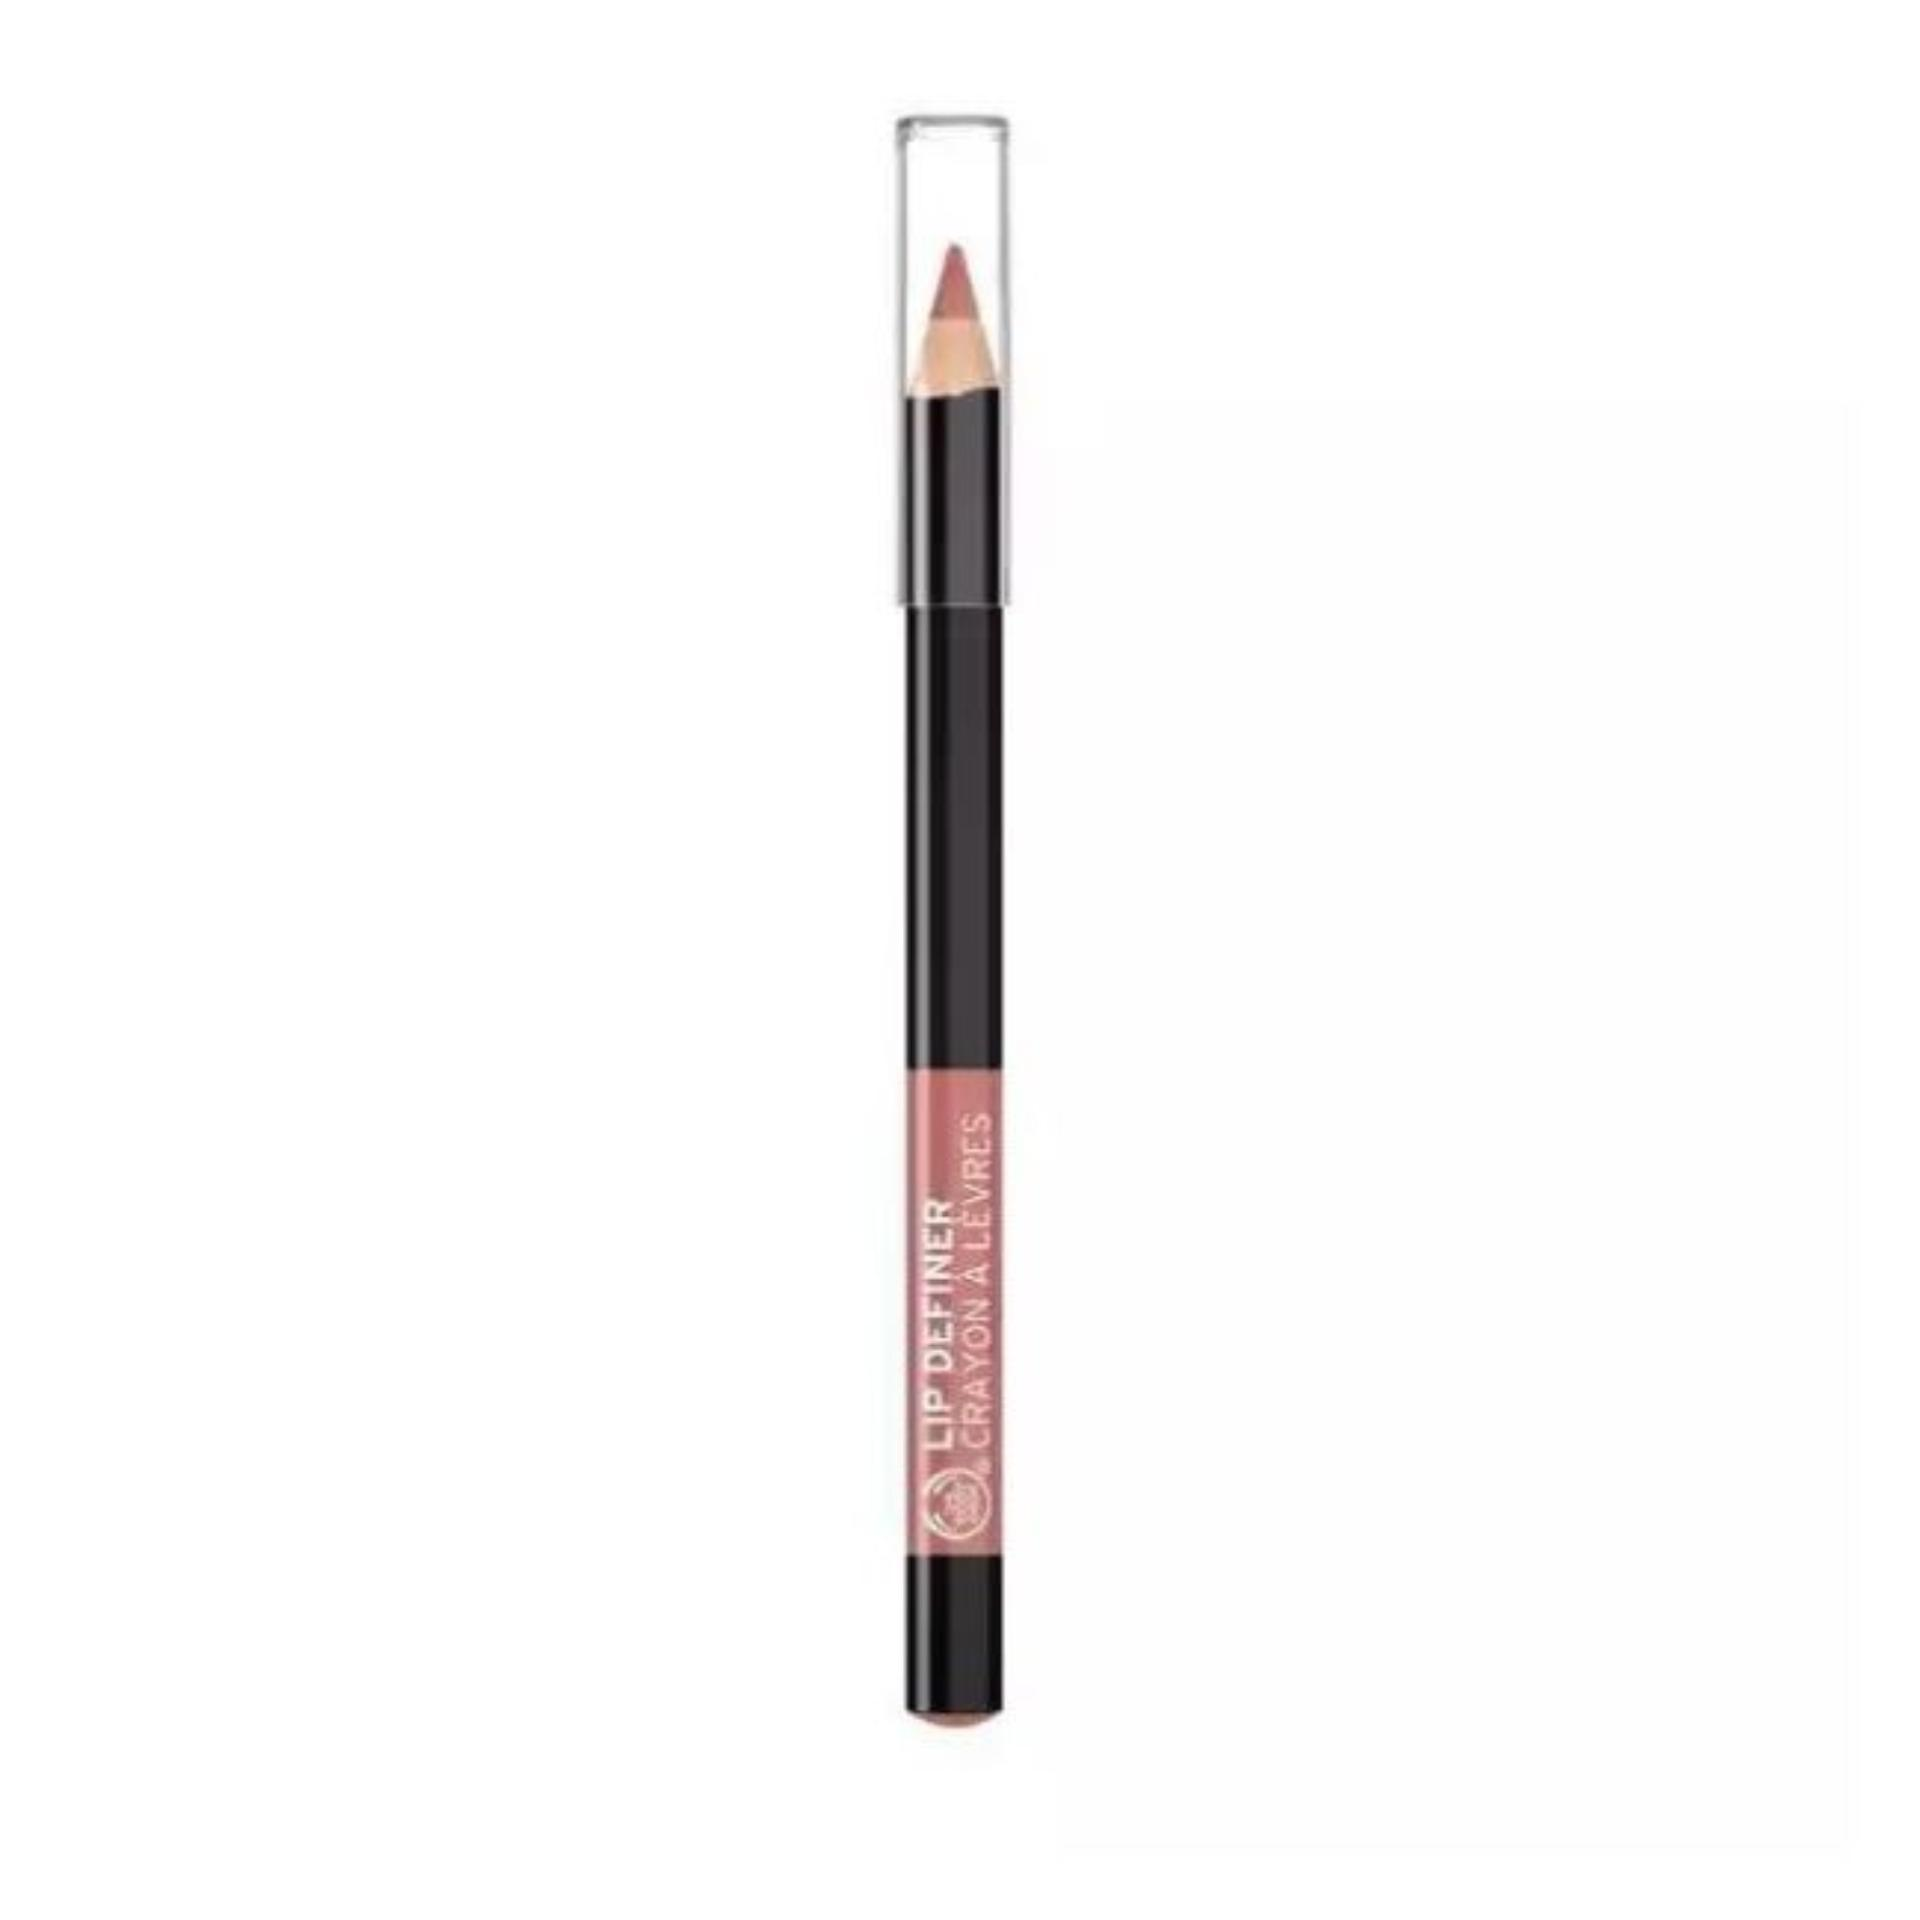 The Body Shop Lip Liner 003 Clover Pink 1.1g By The Body Shop.